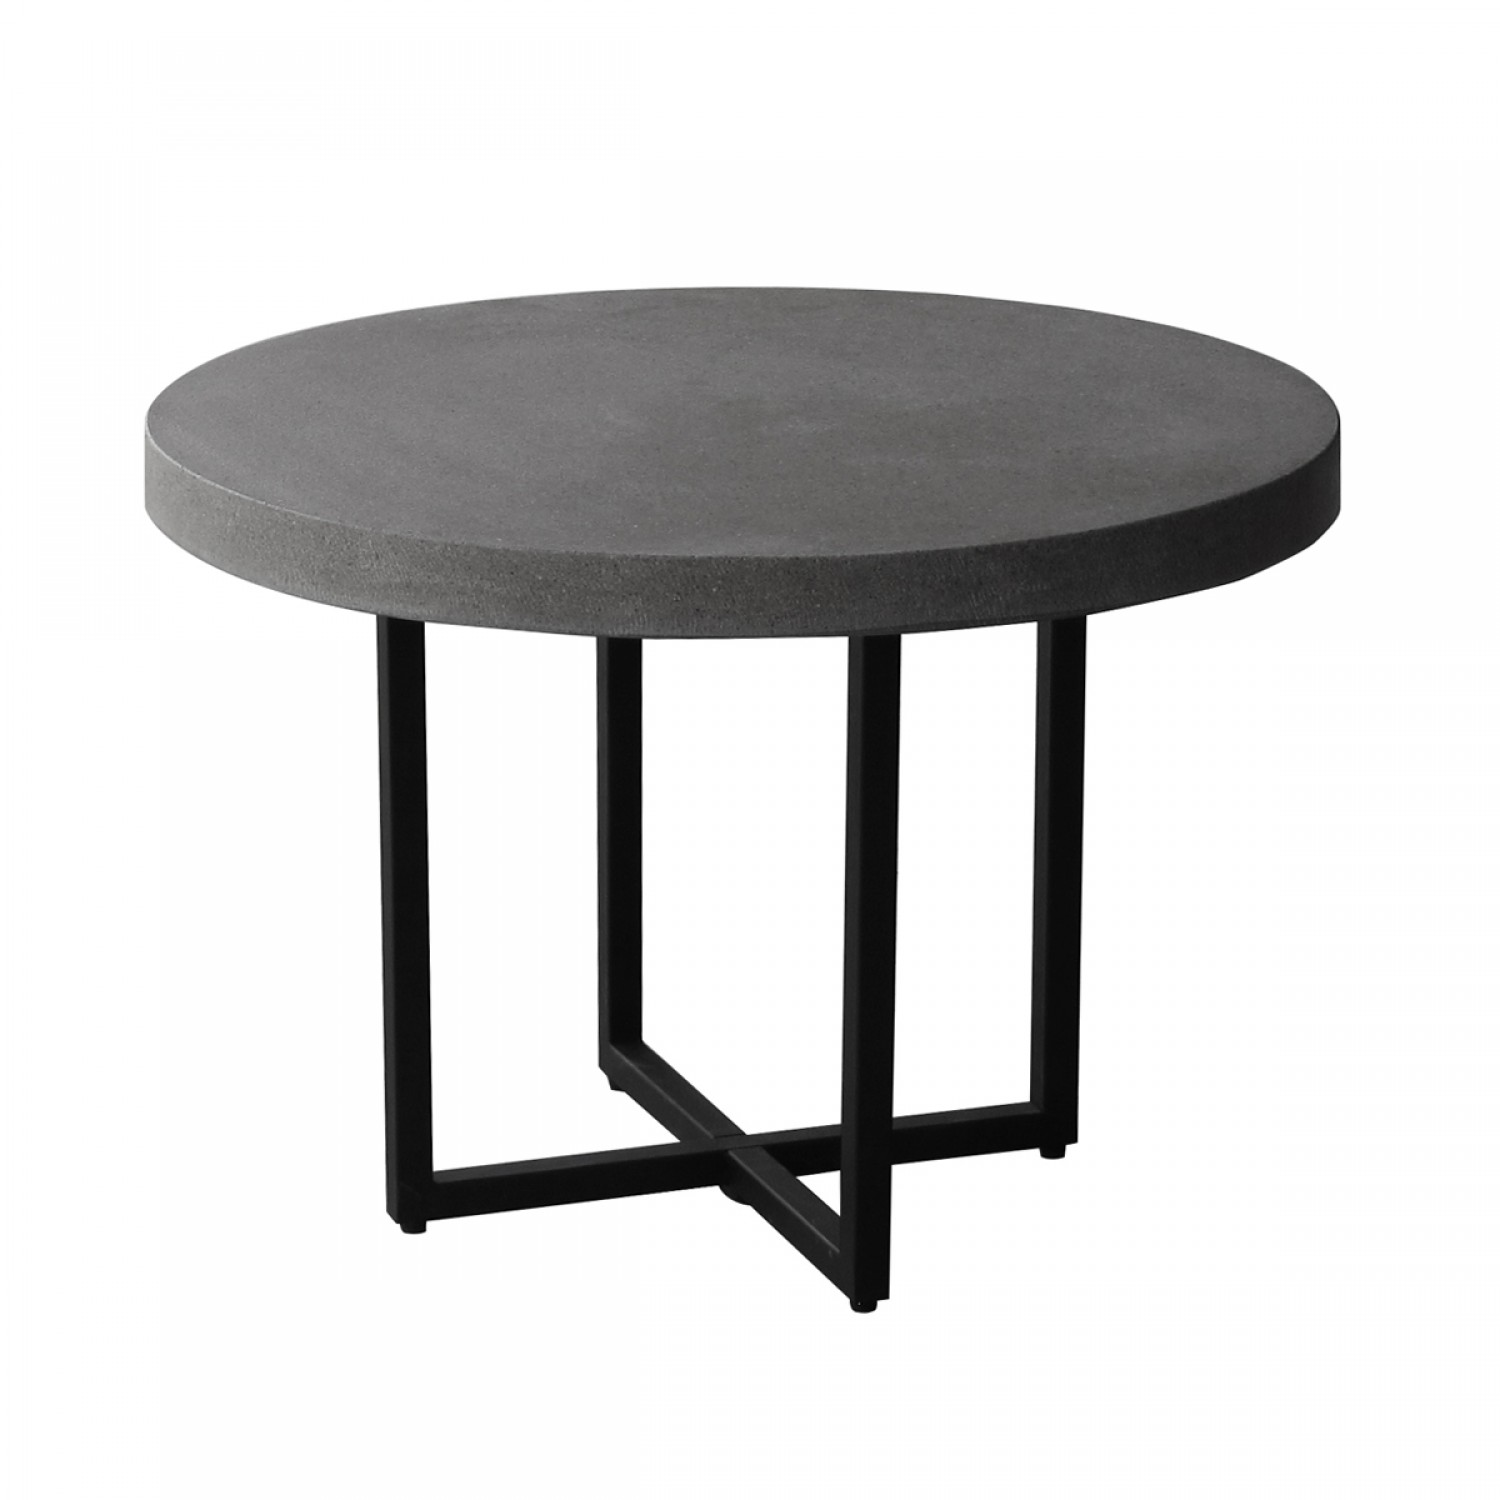 Table Basse Ronde Design Table Basse Ronde Lavastone Koya Design